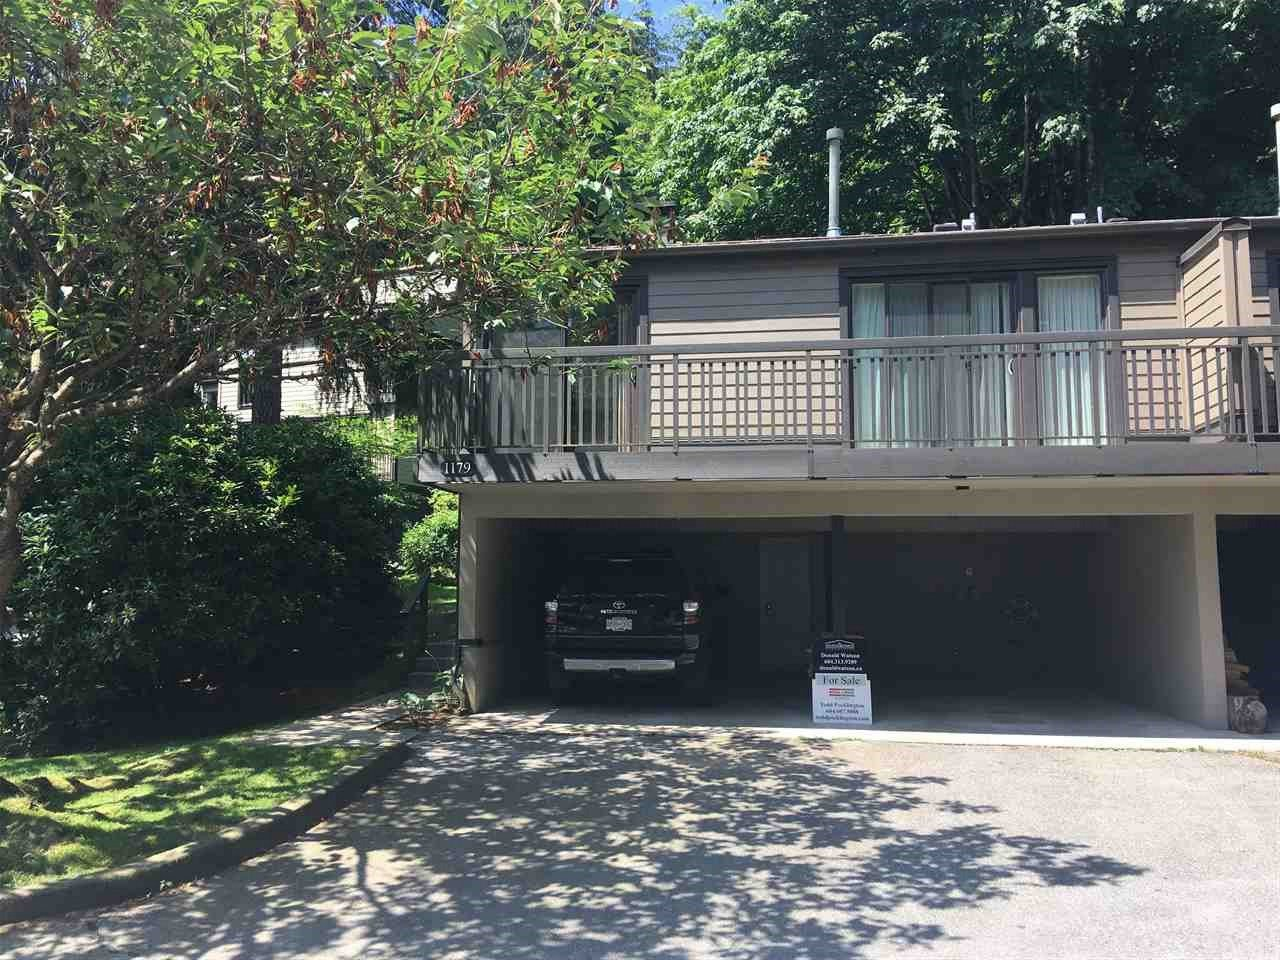 """Main Photo: 1179 HERITAGE Boulevard in North Vancouver: Seymour NV Townhouse for sale in """"Heritage in the Woods"""" : MLS®# R2182409"""